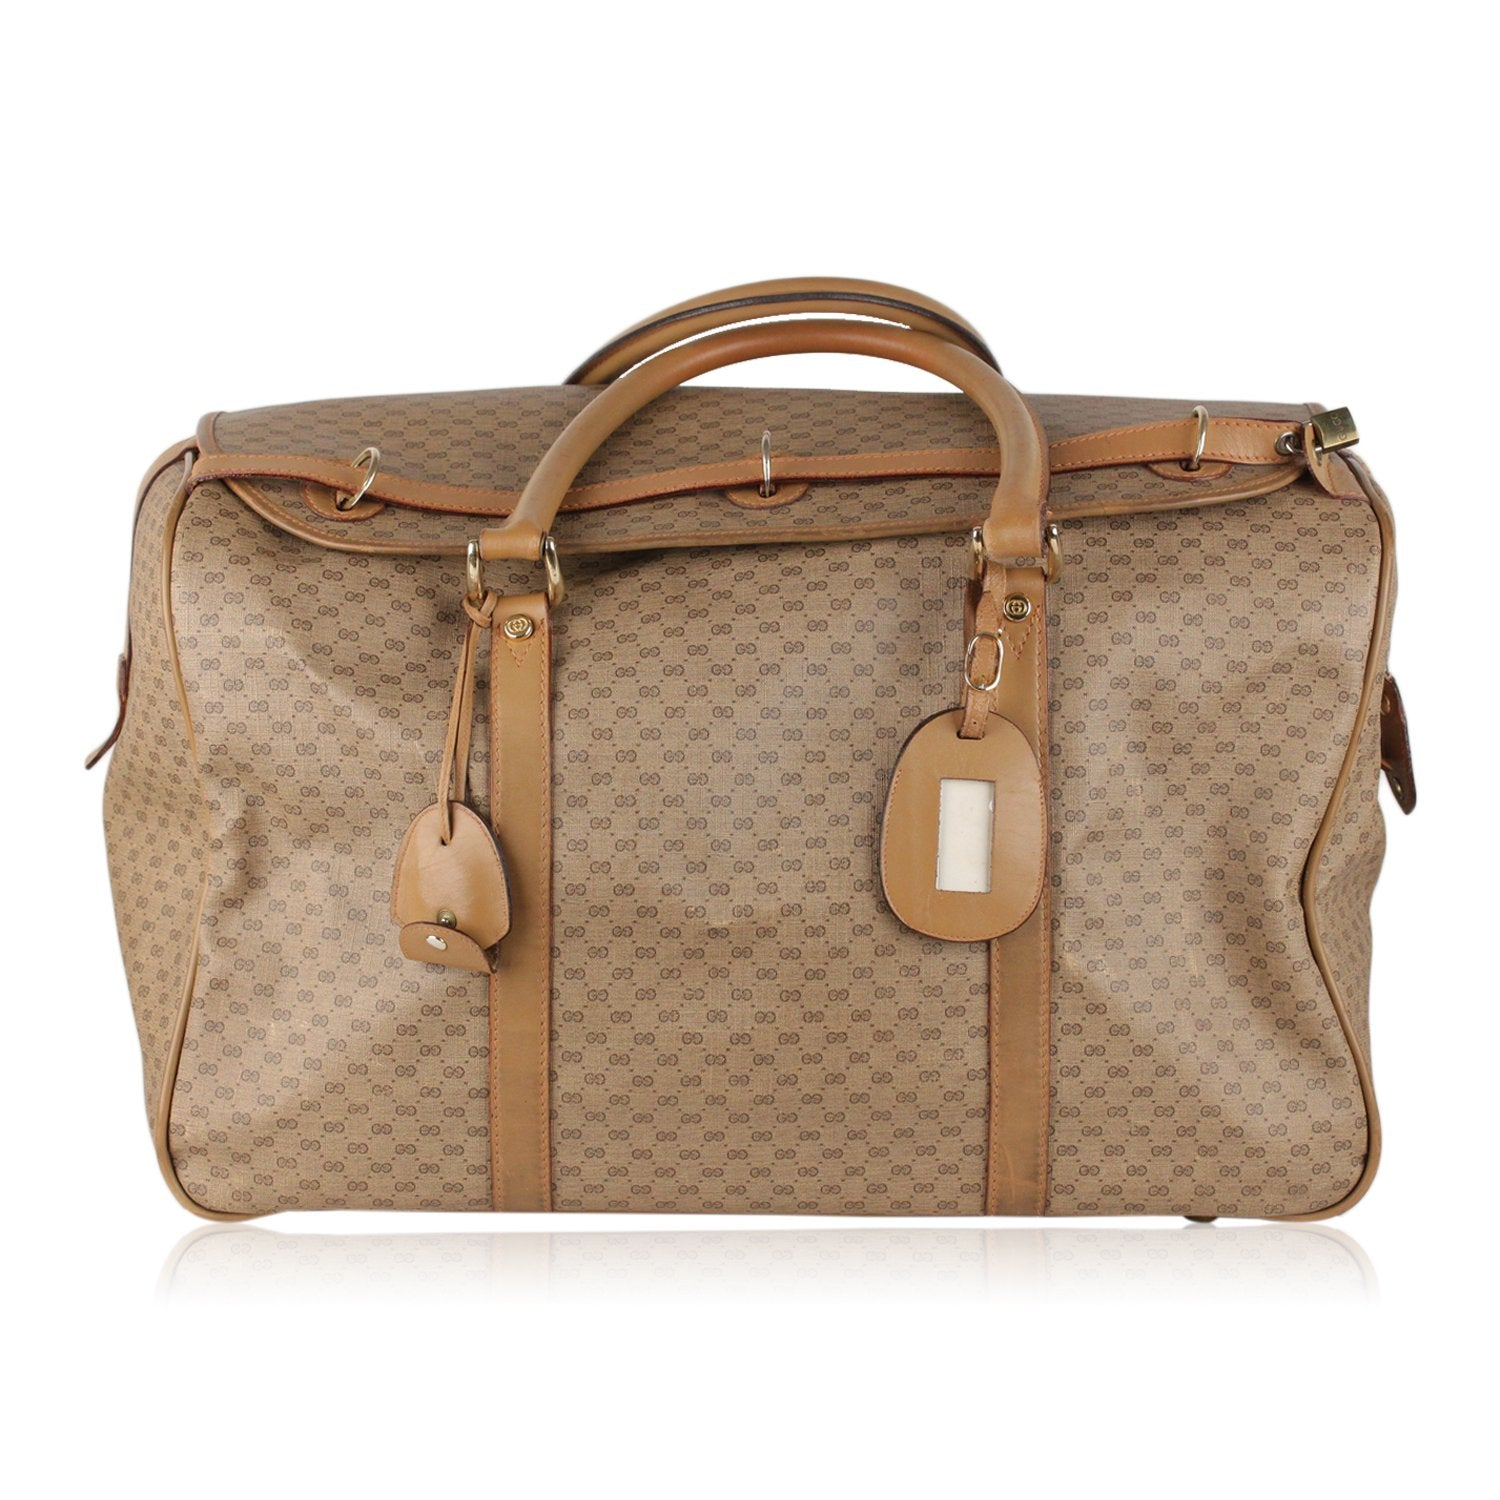 d138ee60b41 Enjoy Gucci Vintage Monogram Travel Bag Weekender at OPHERTYCIOCCI –  OPHERTY   CIOCCI